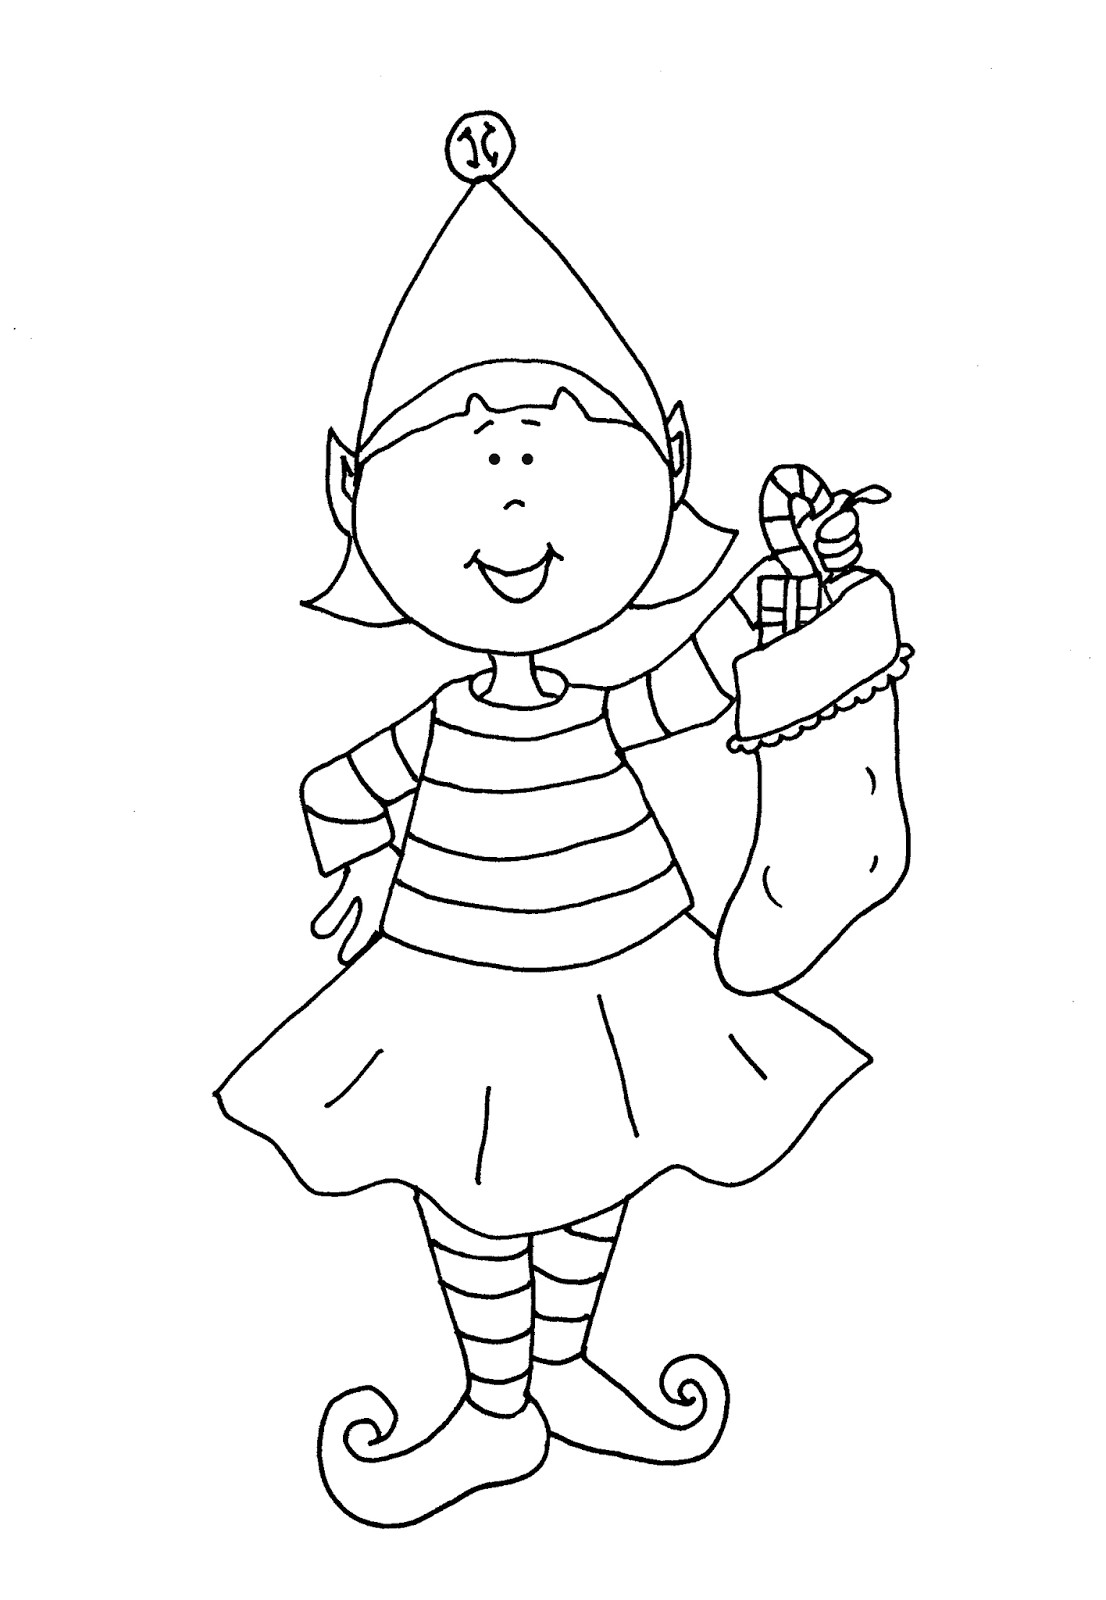 Christmas Elf Coloring Pages Coloring Ideas Elf Coloring Pages Printable Free Christmas